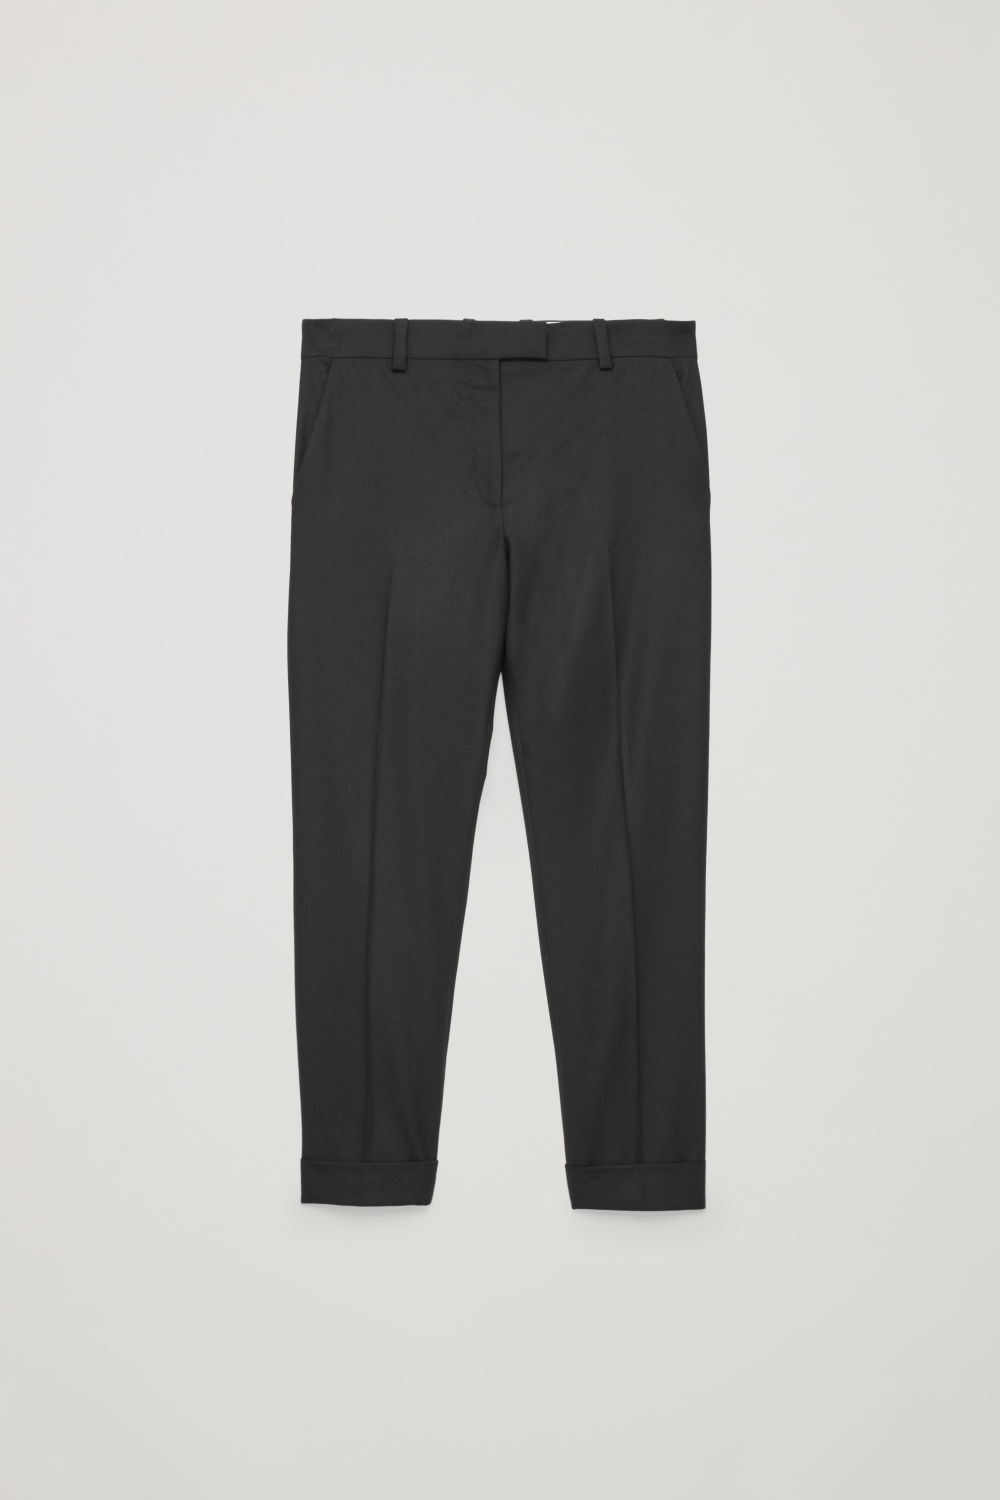 WOOL PRESS-FOLD TROUSERS